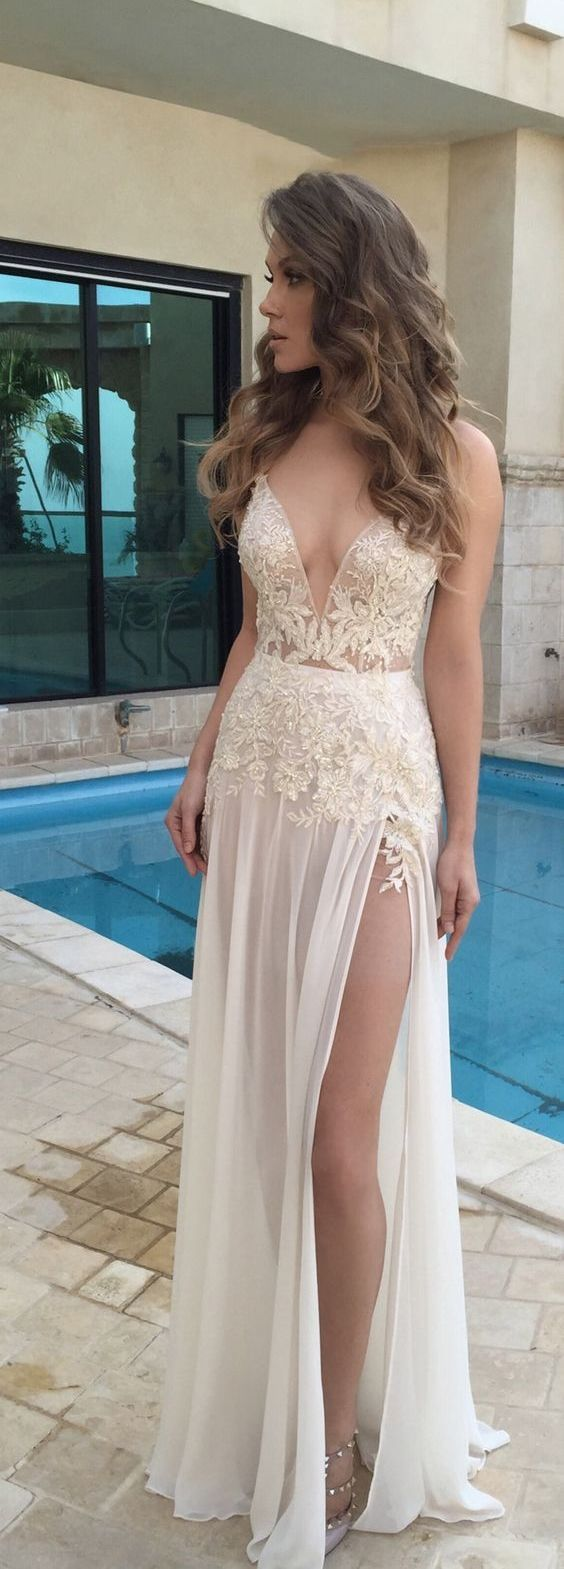 Chiffon lace prom dresses beach wedding dresses sexy wedding